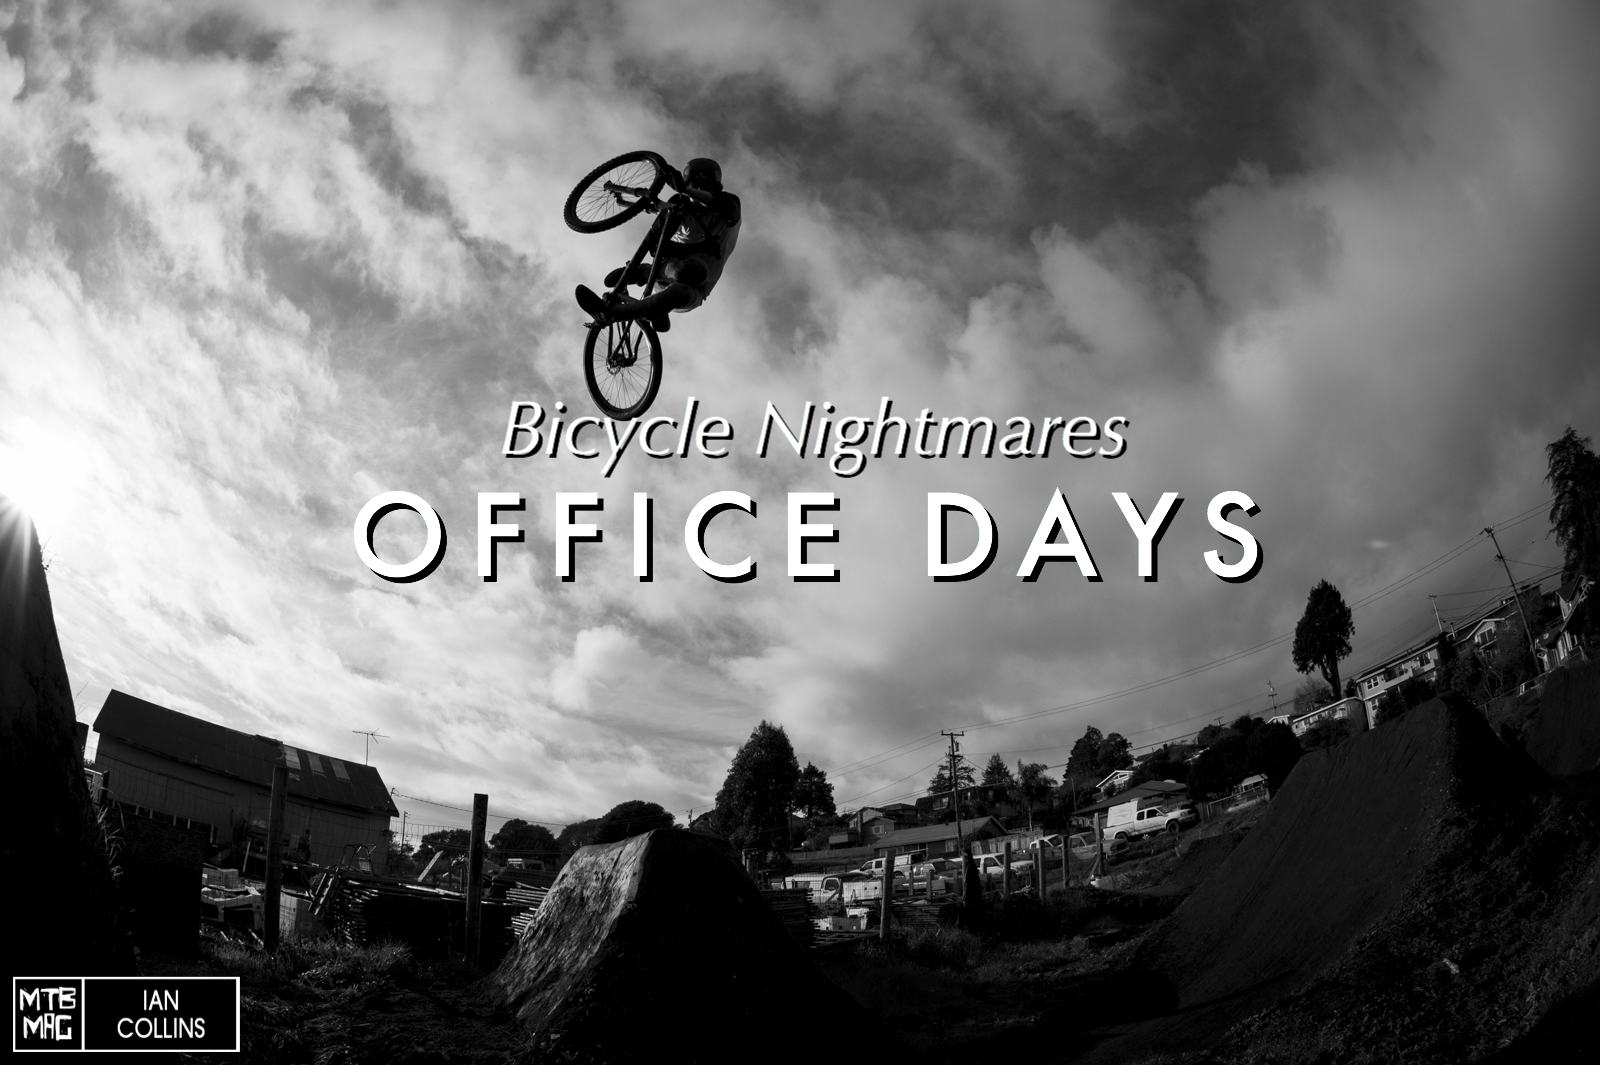 Bicycle Nightmares - Office Days